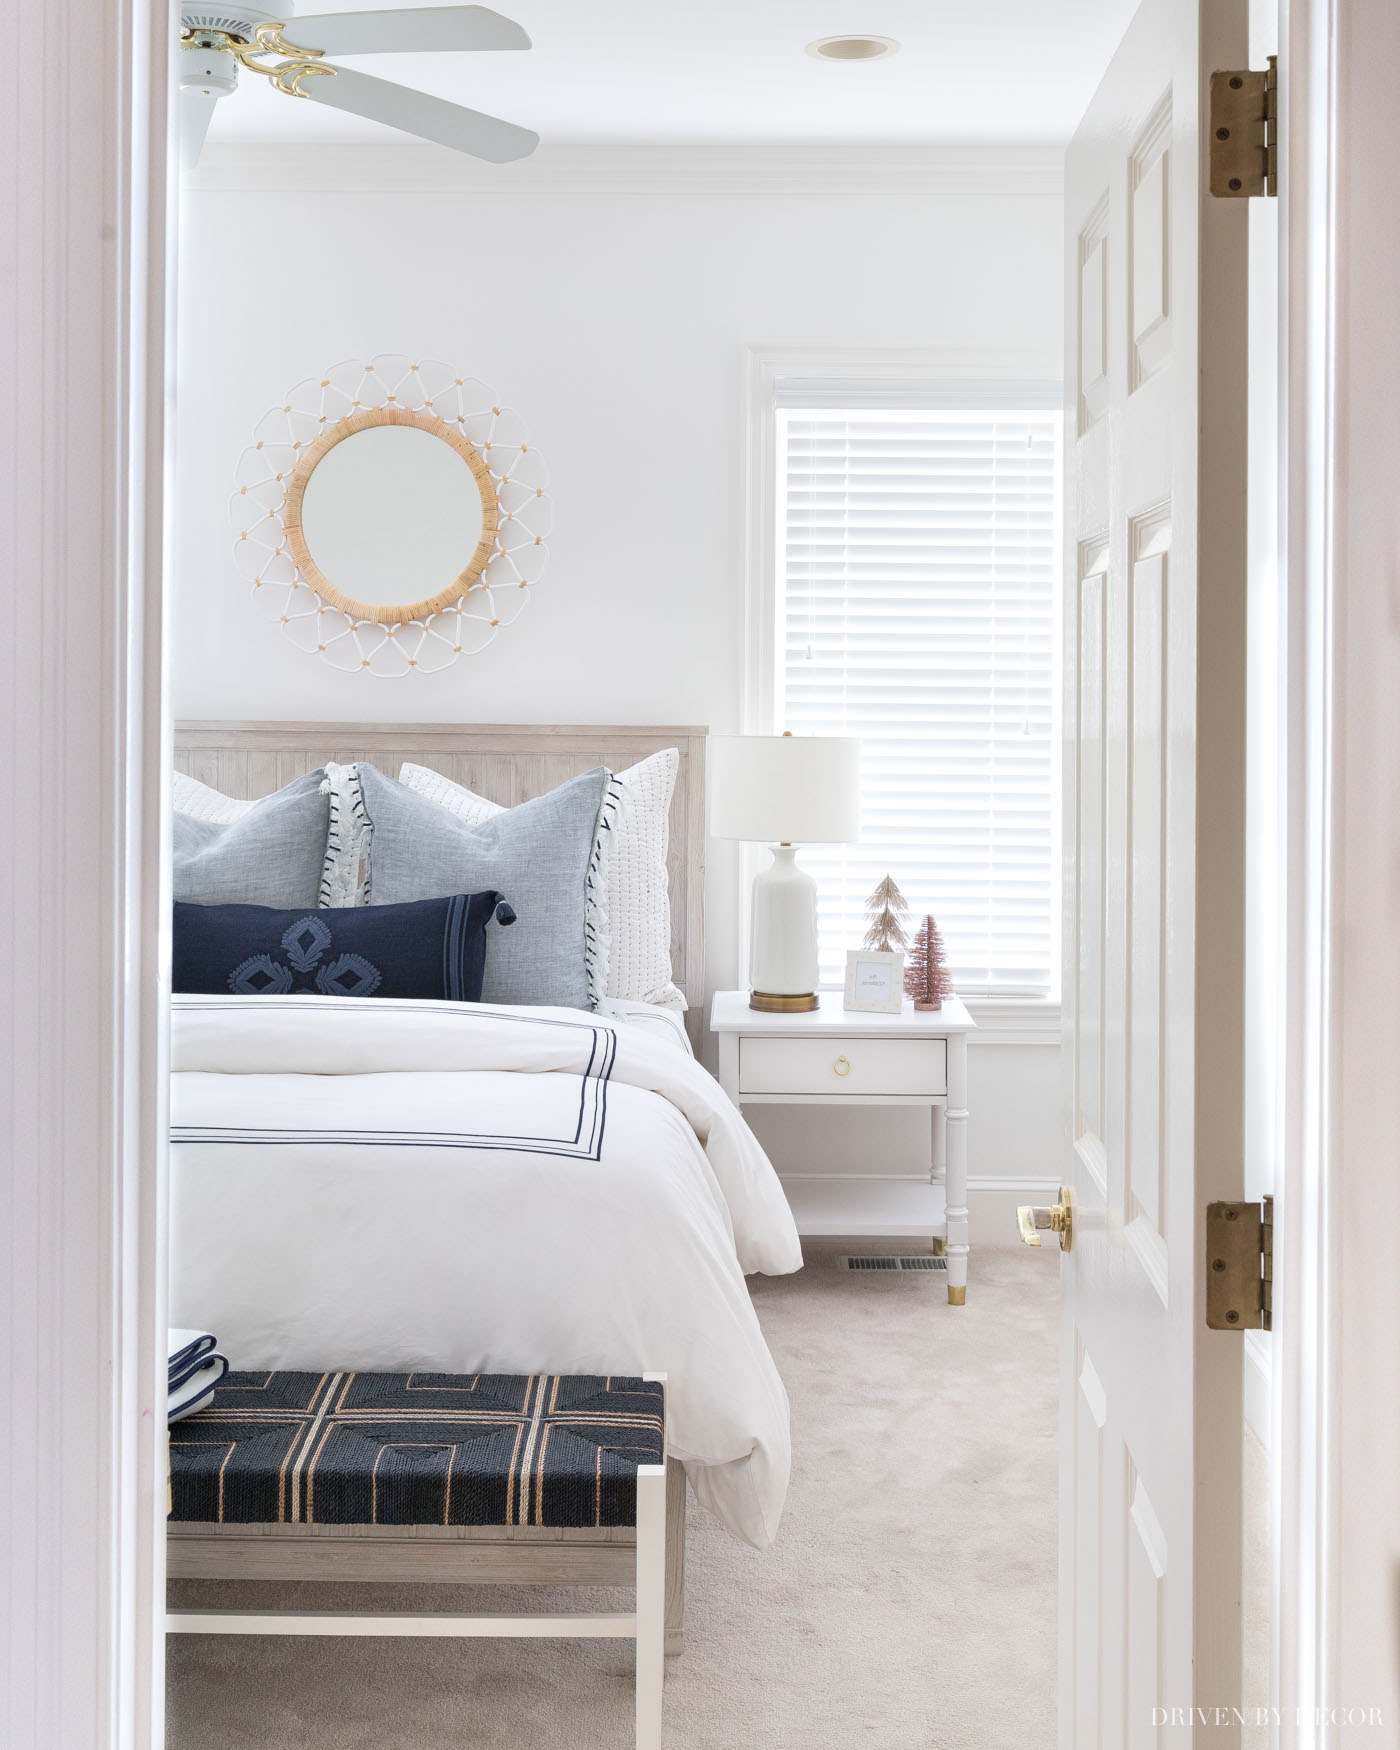 I love the white color in this bedroom - Benjamin Moore Simply White!